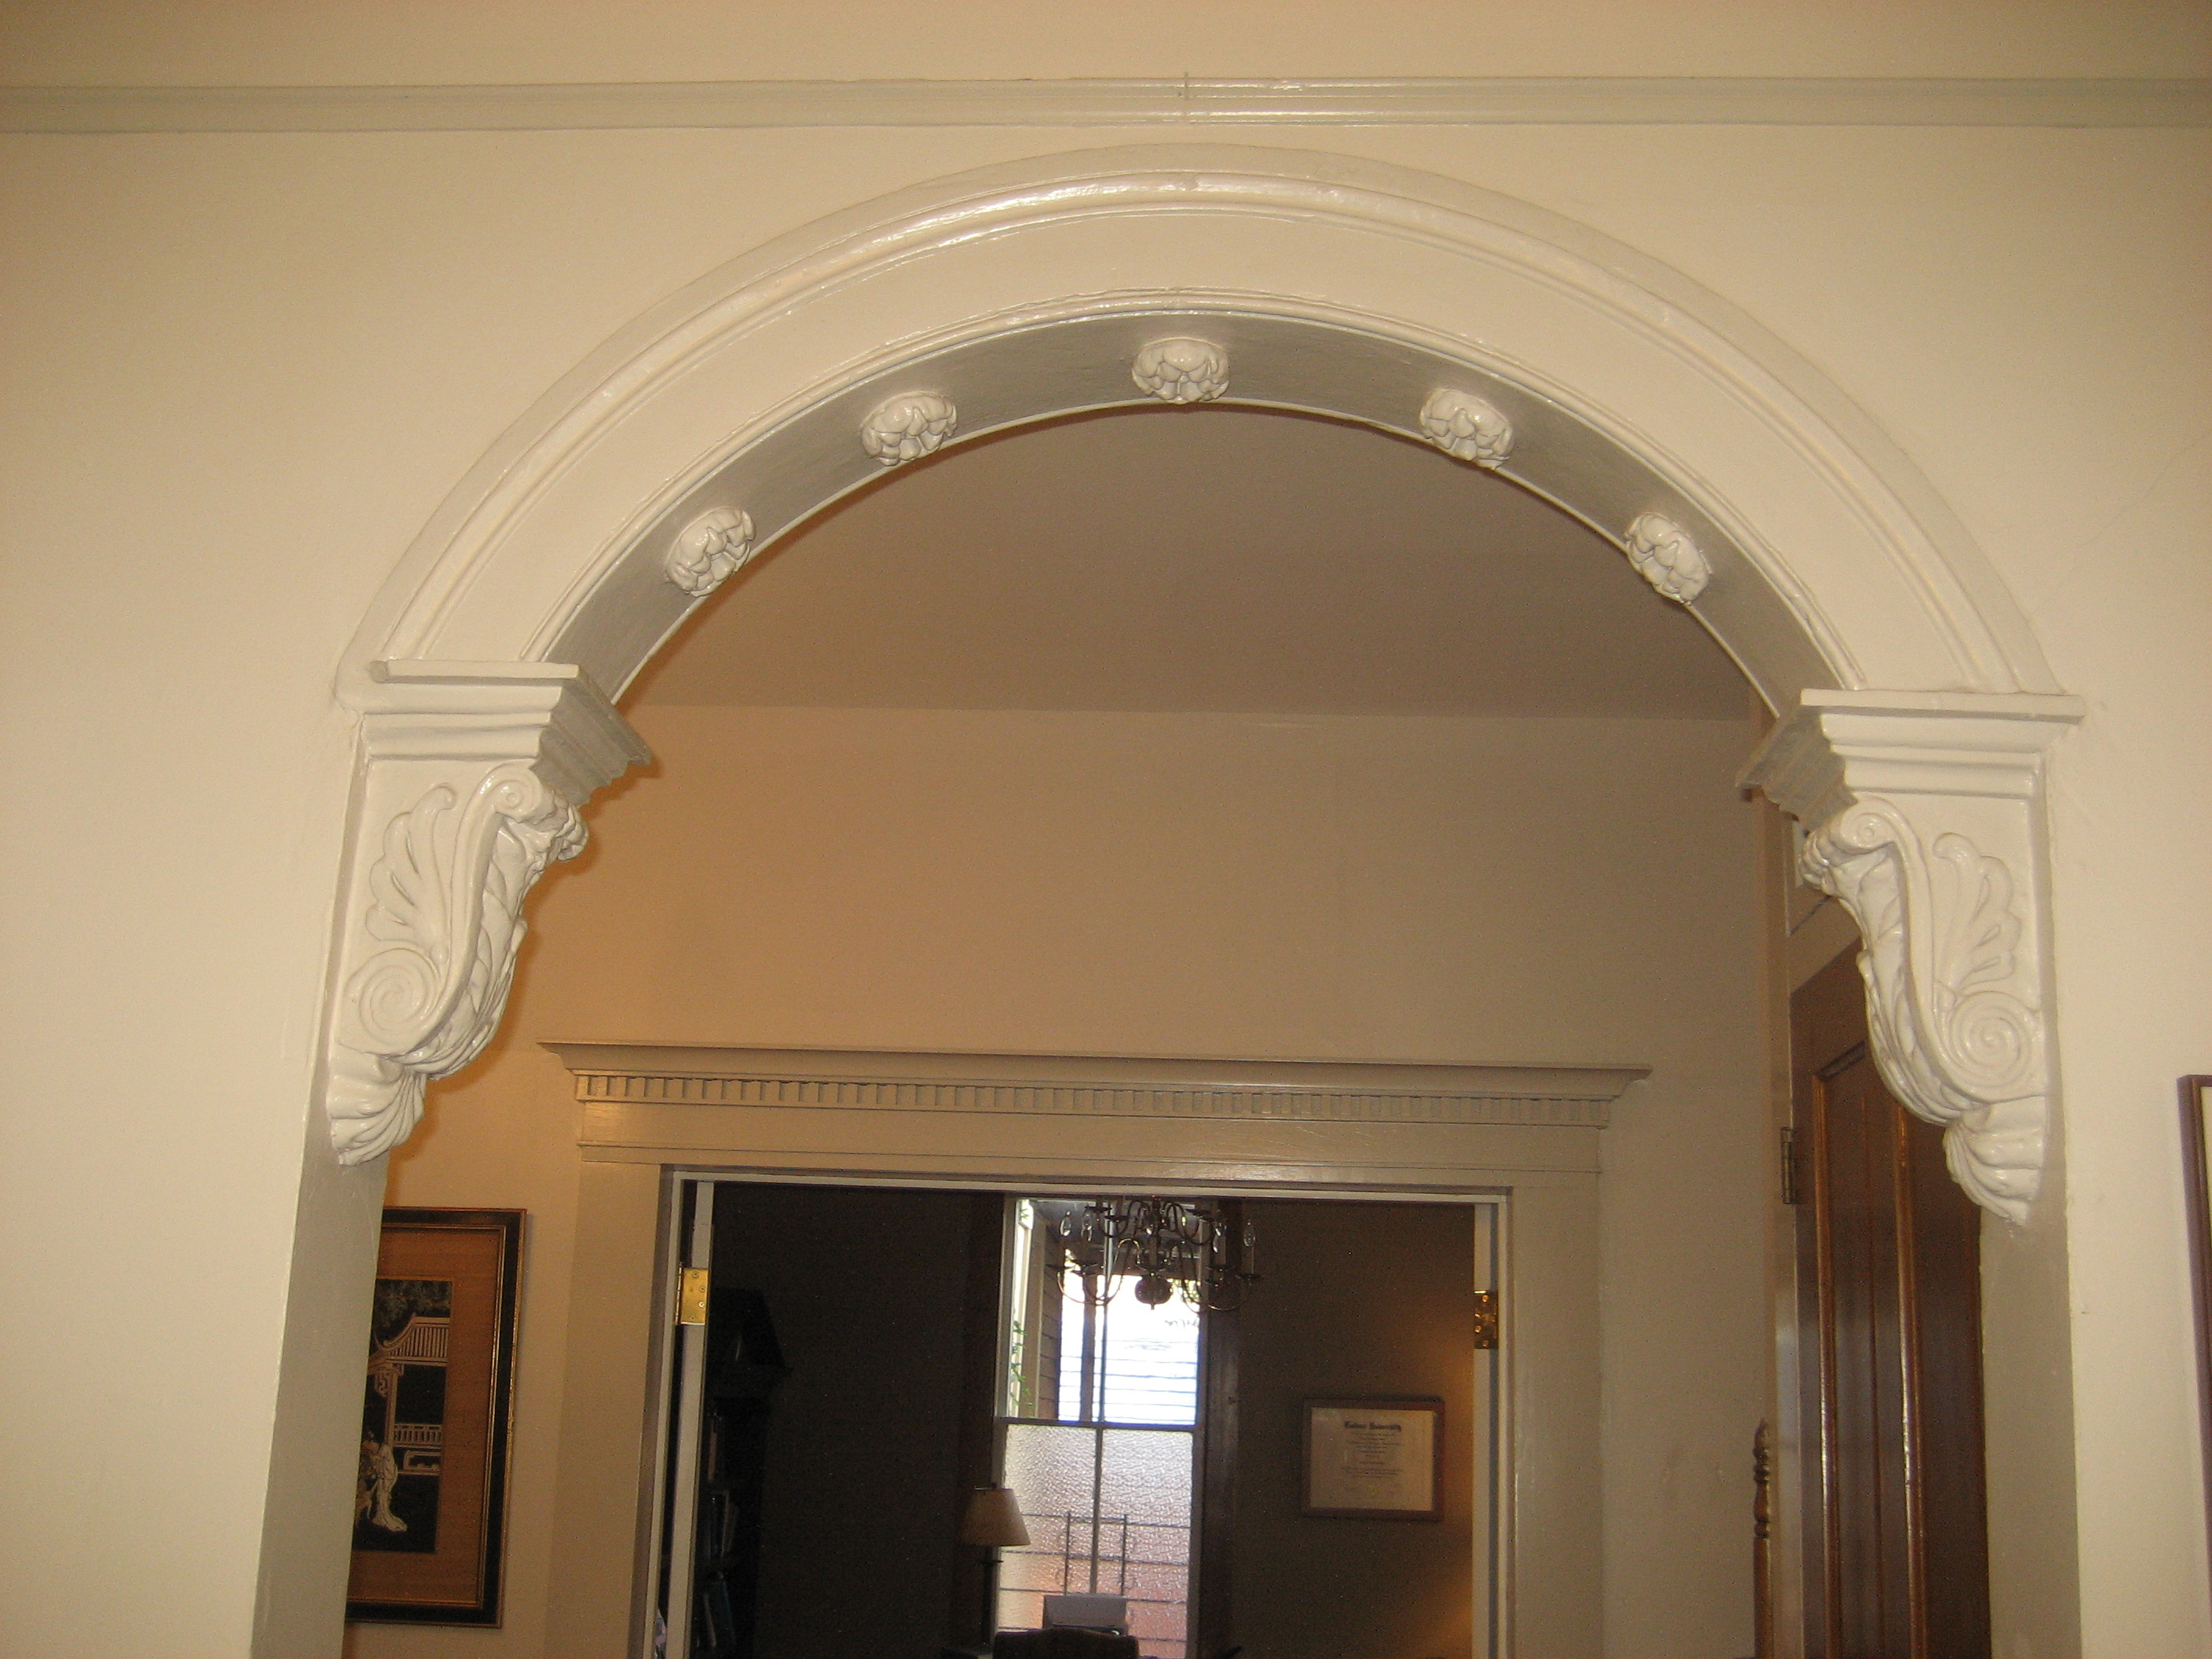 File:Carrollton House Doorway Arch Jan 2010.JPG - Wikimedia Commons